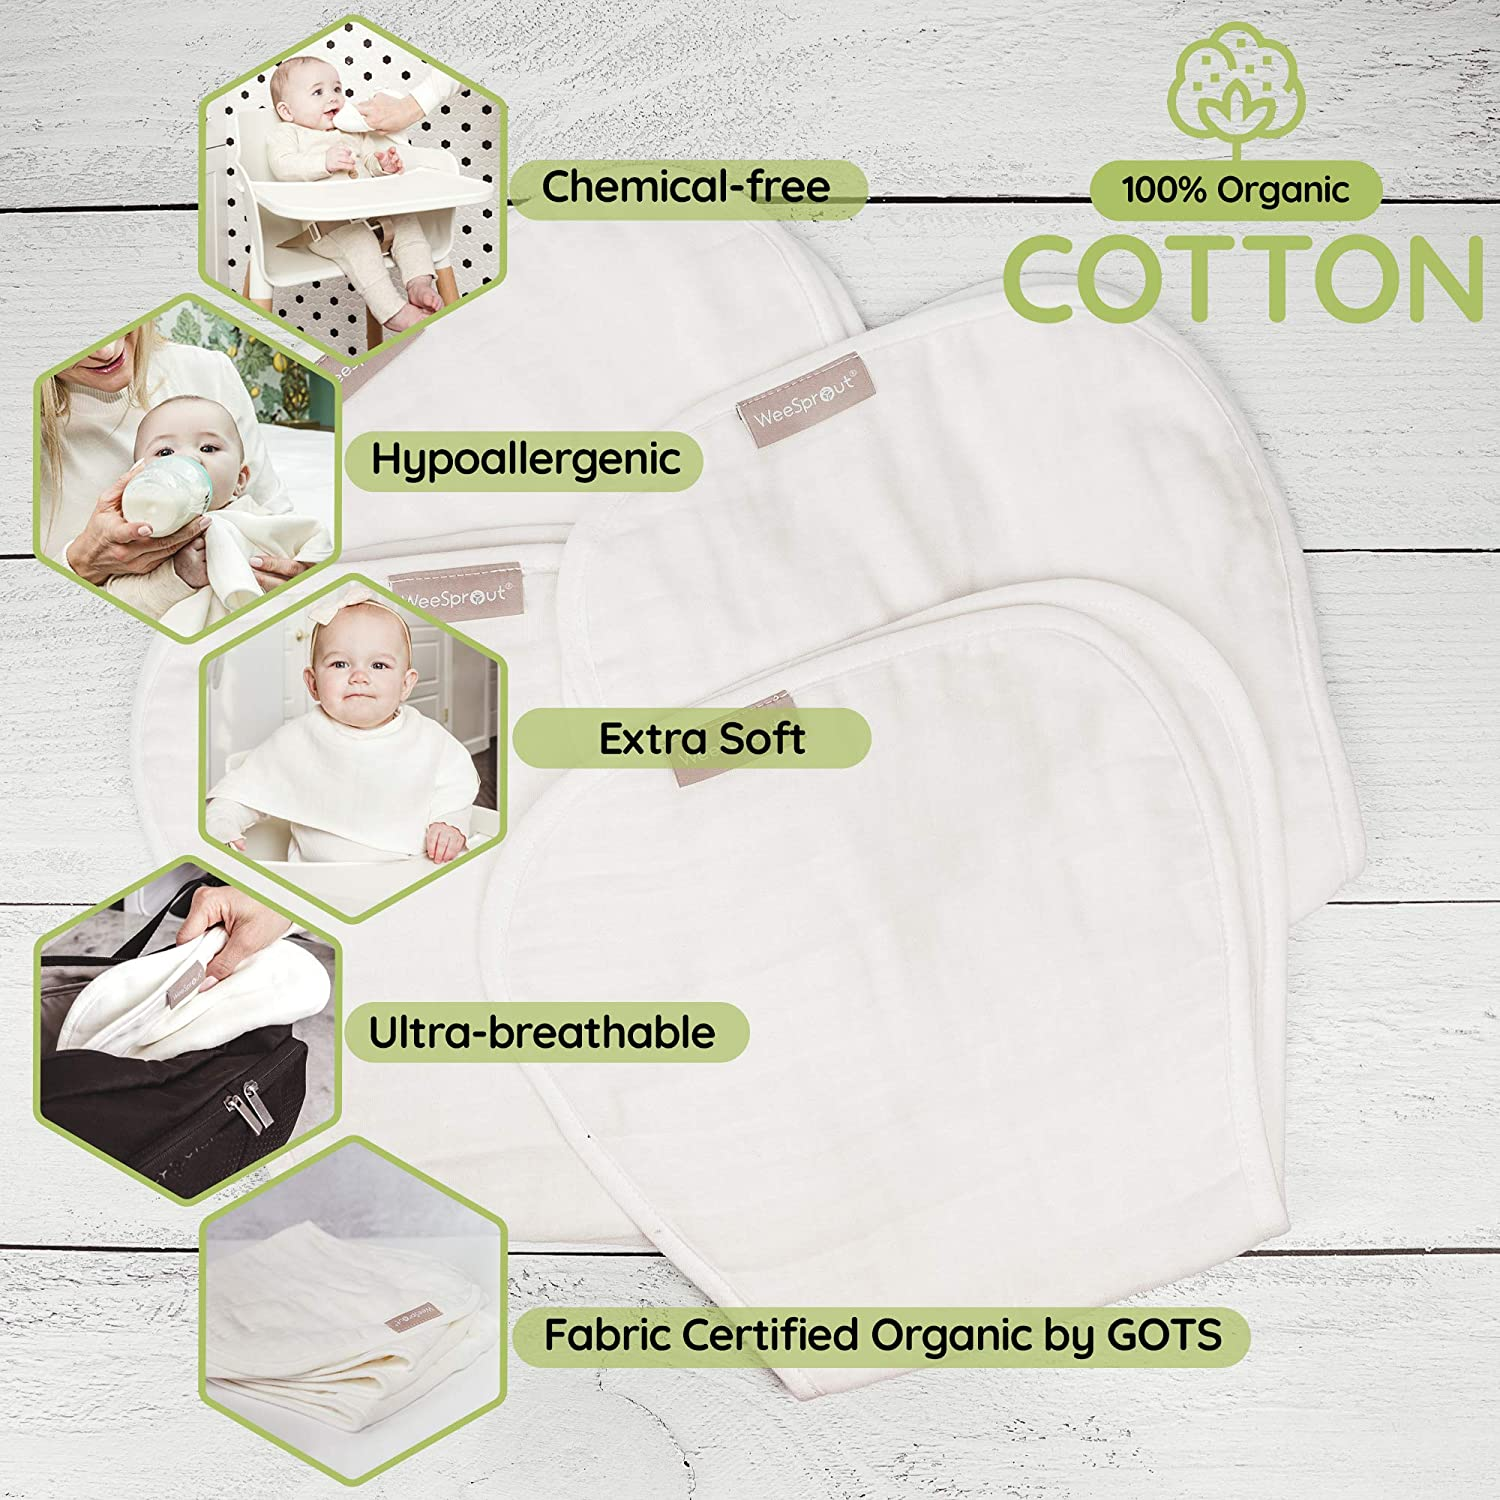 WeeSprout Set of 4 Organic Cotton Burp Cloths - Four Ultra-Absorbent Layers Keep Clothes Dry, Button Transforms Burp Cloth Into Baby Bib, Machine Washable & Dryer Friendly, Unisex for Boys & Girls: Home & Kitchen